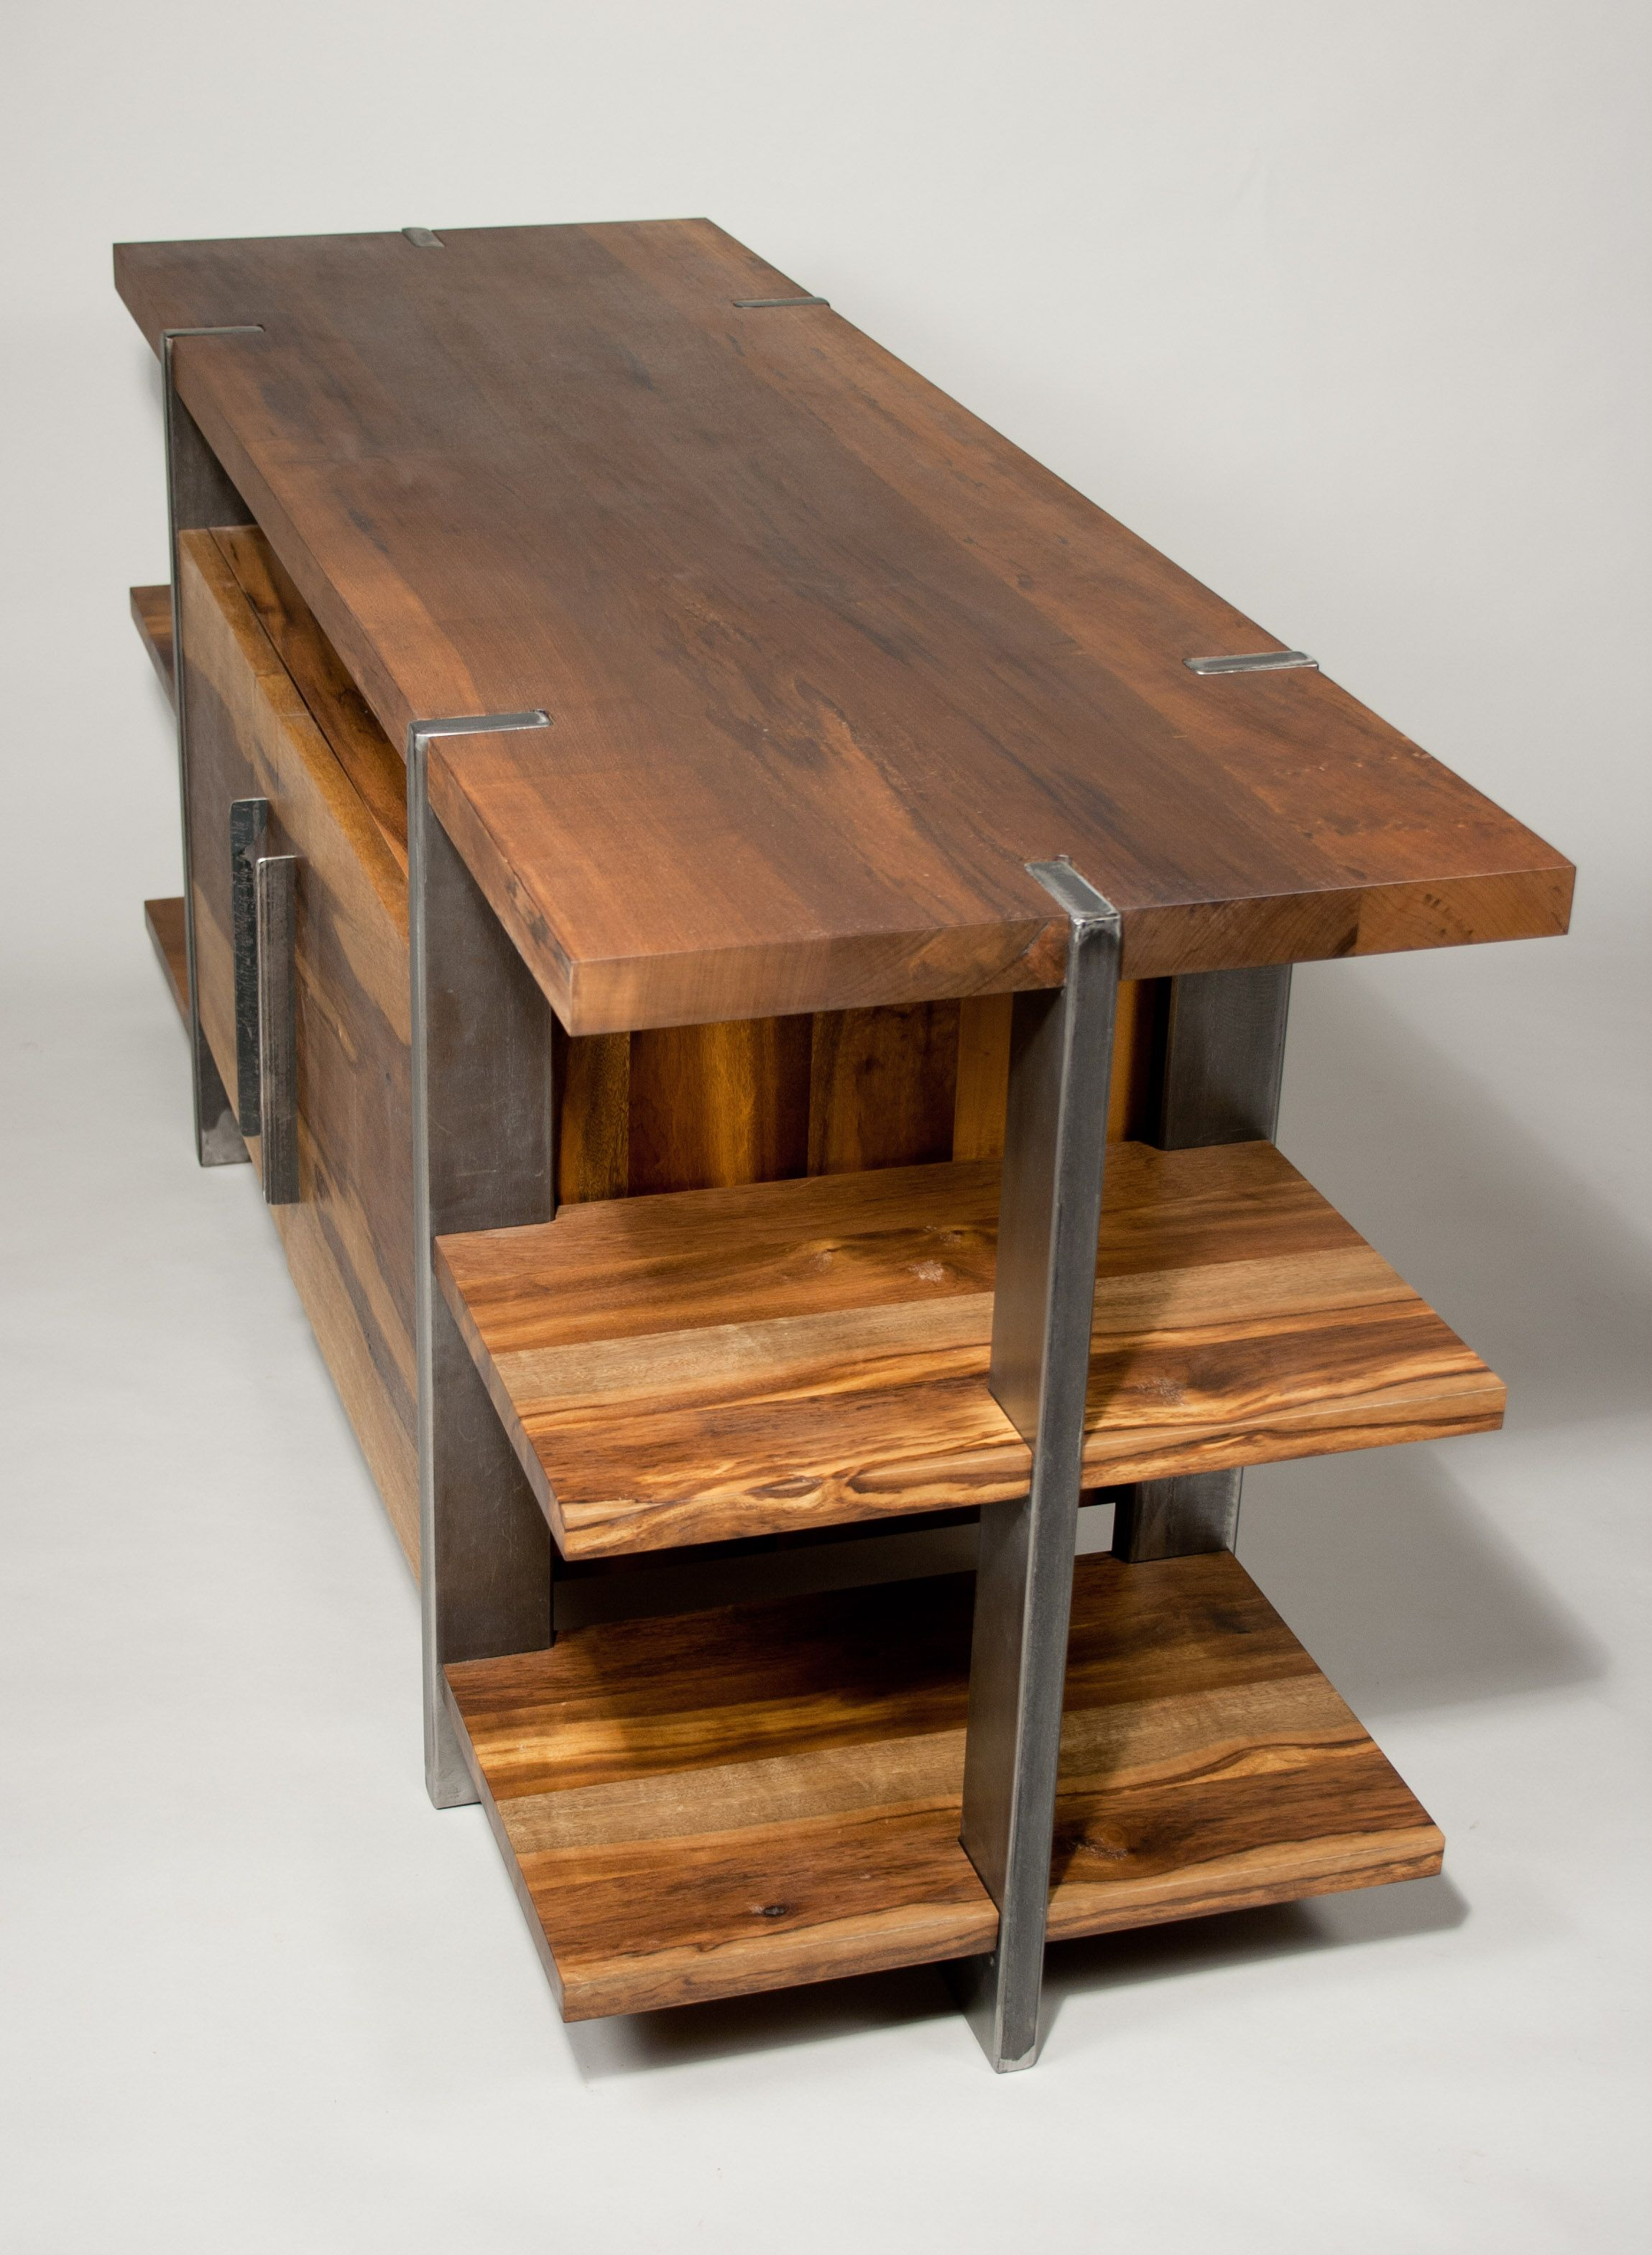 Reclaimed wood entertainment center google search sun for Reclaimed wood table designs